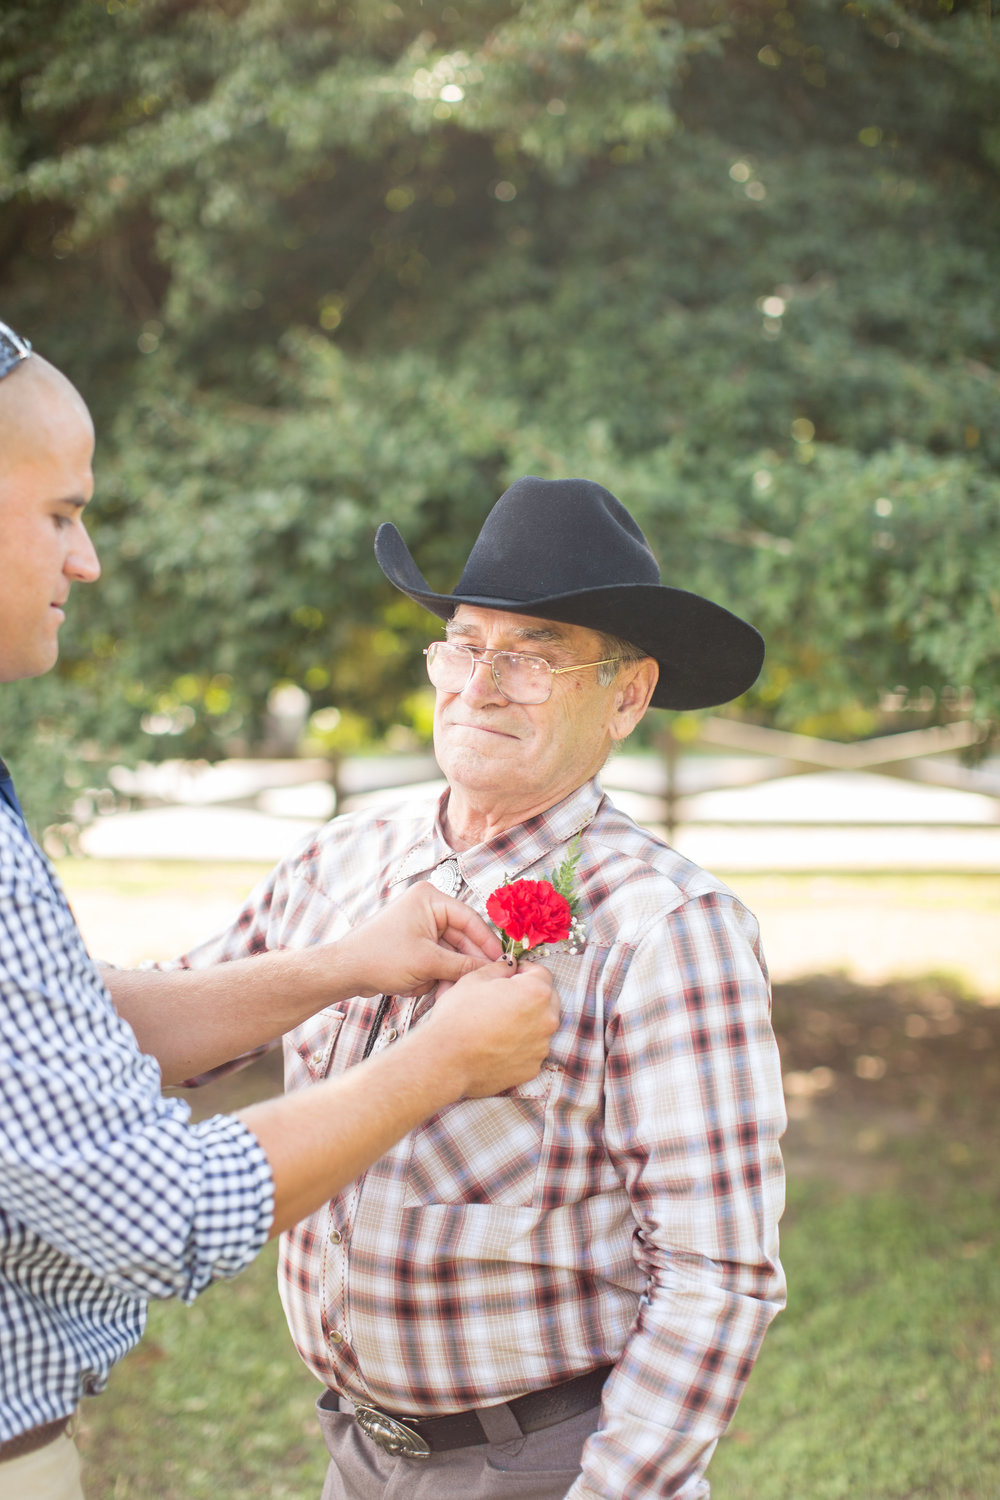 country-rustic-wedding-cowboy-hat-groom-bouttoniere-virginia-photos.jpg